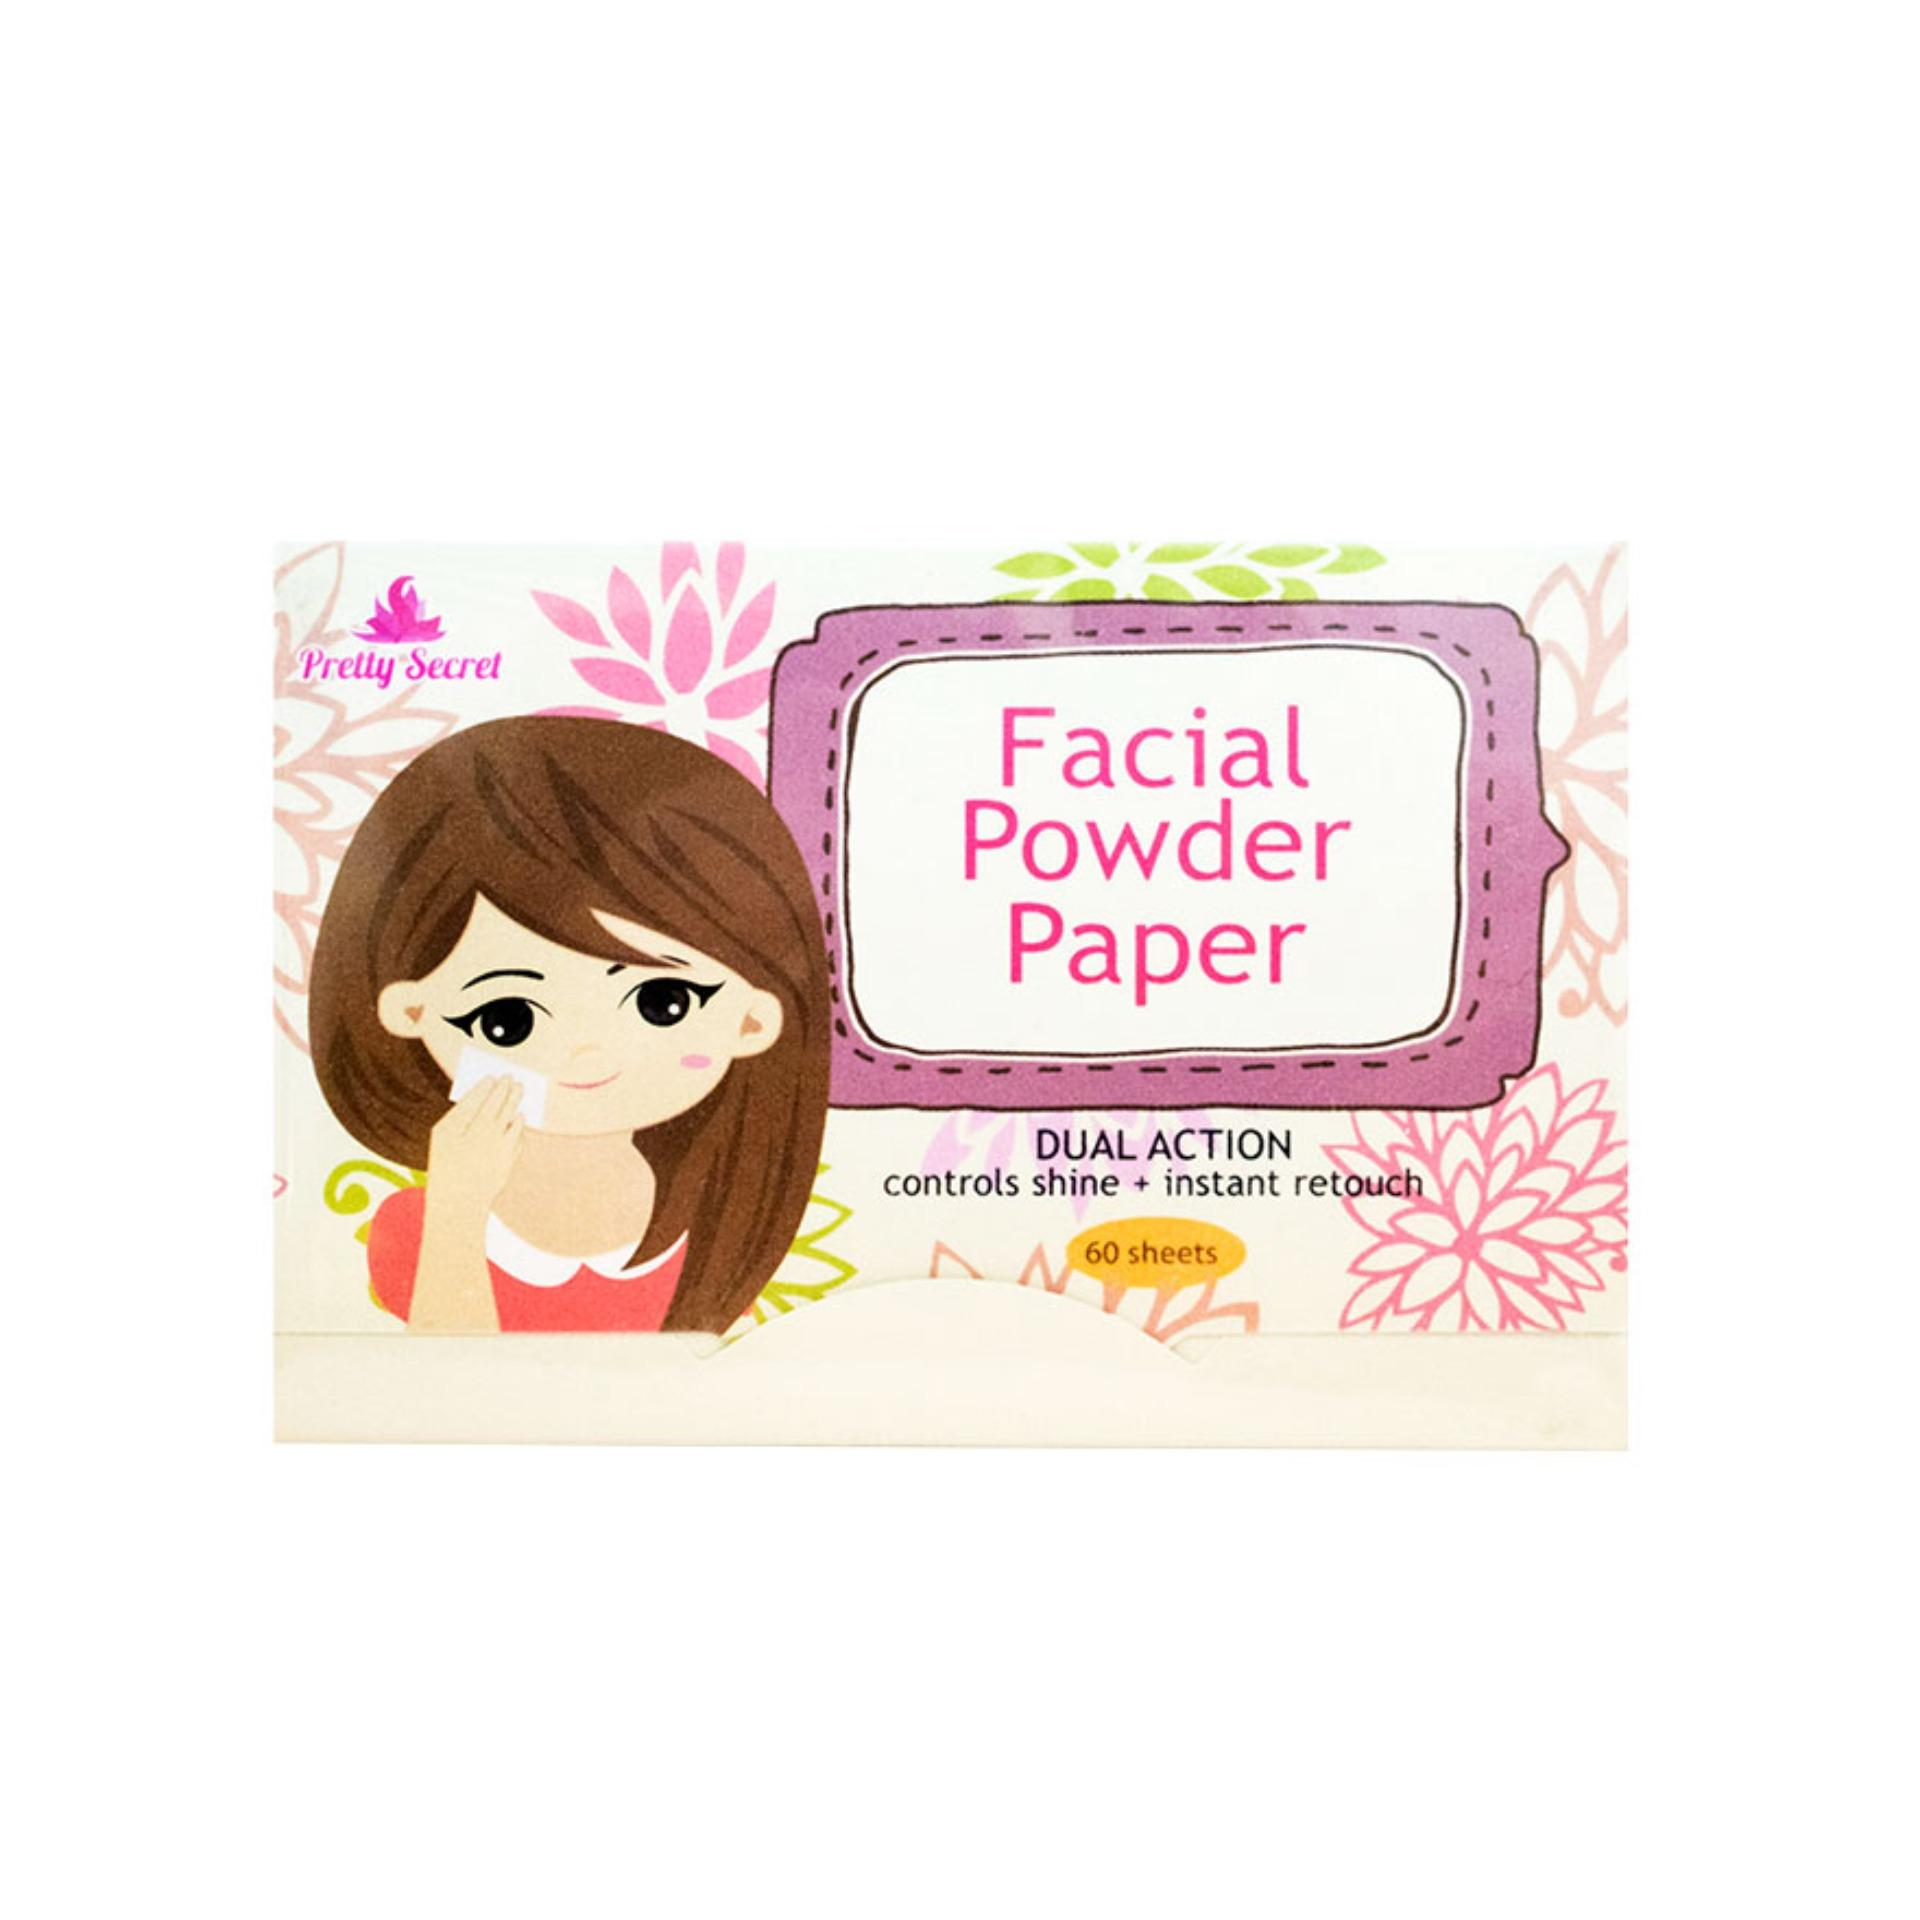 PRETTY SECRET Facial Powder Paper 60 sheets Philippines